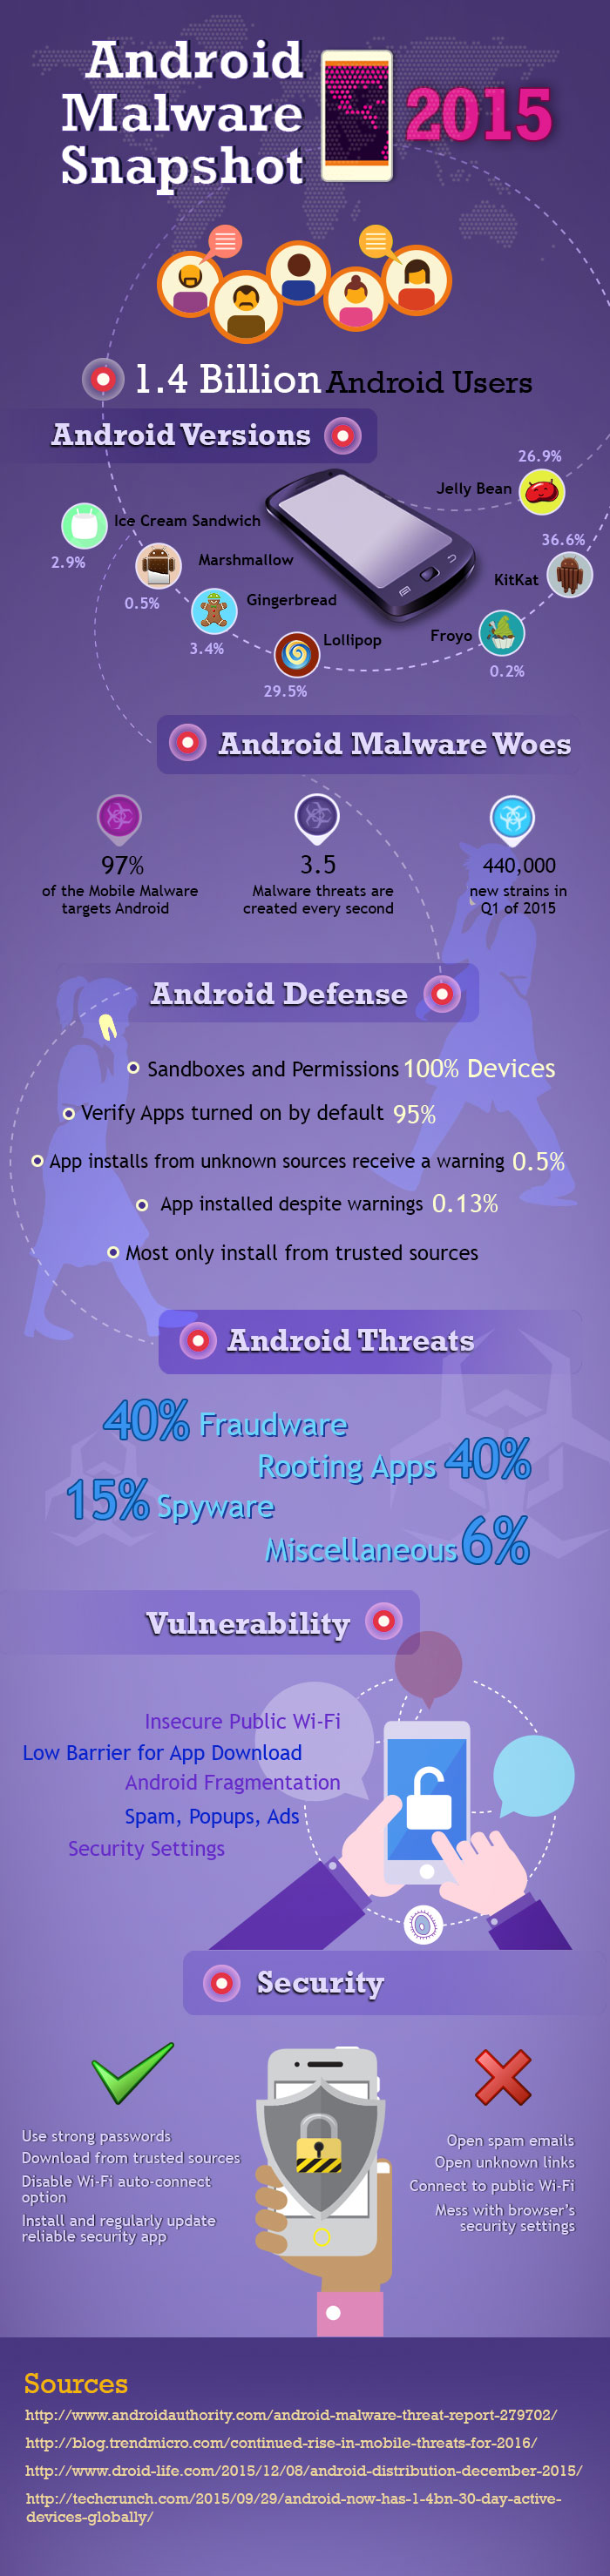 Malware Woes Continued to Haunt Android in 2015